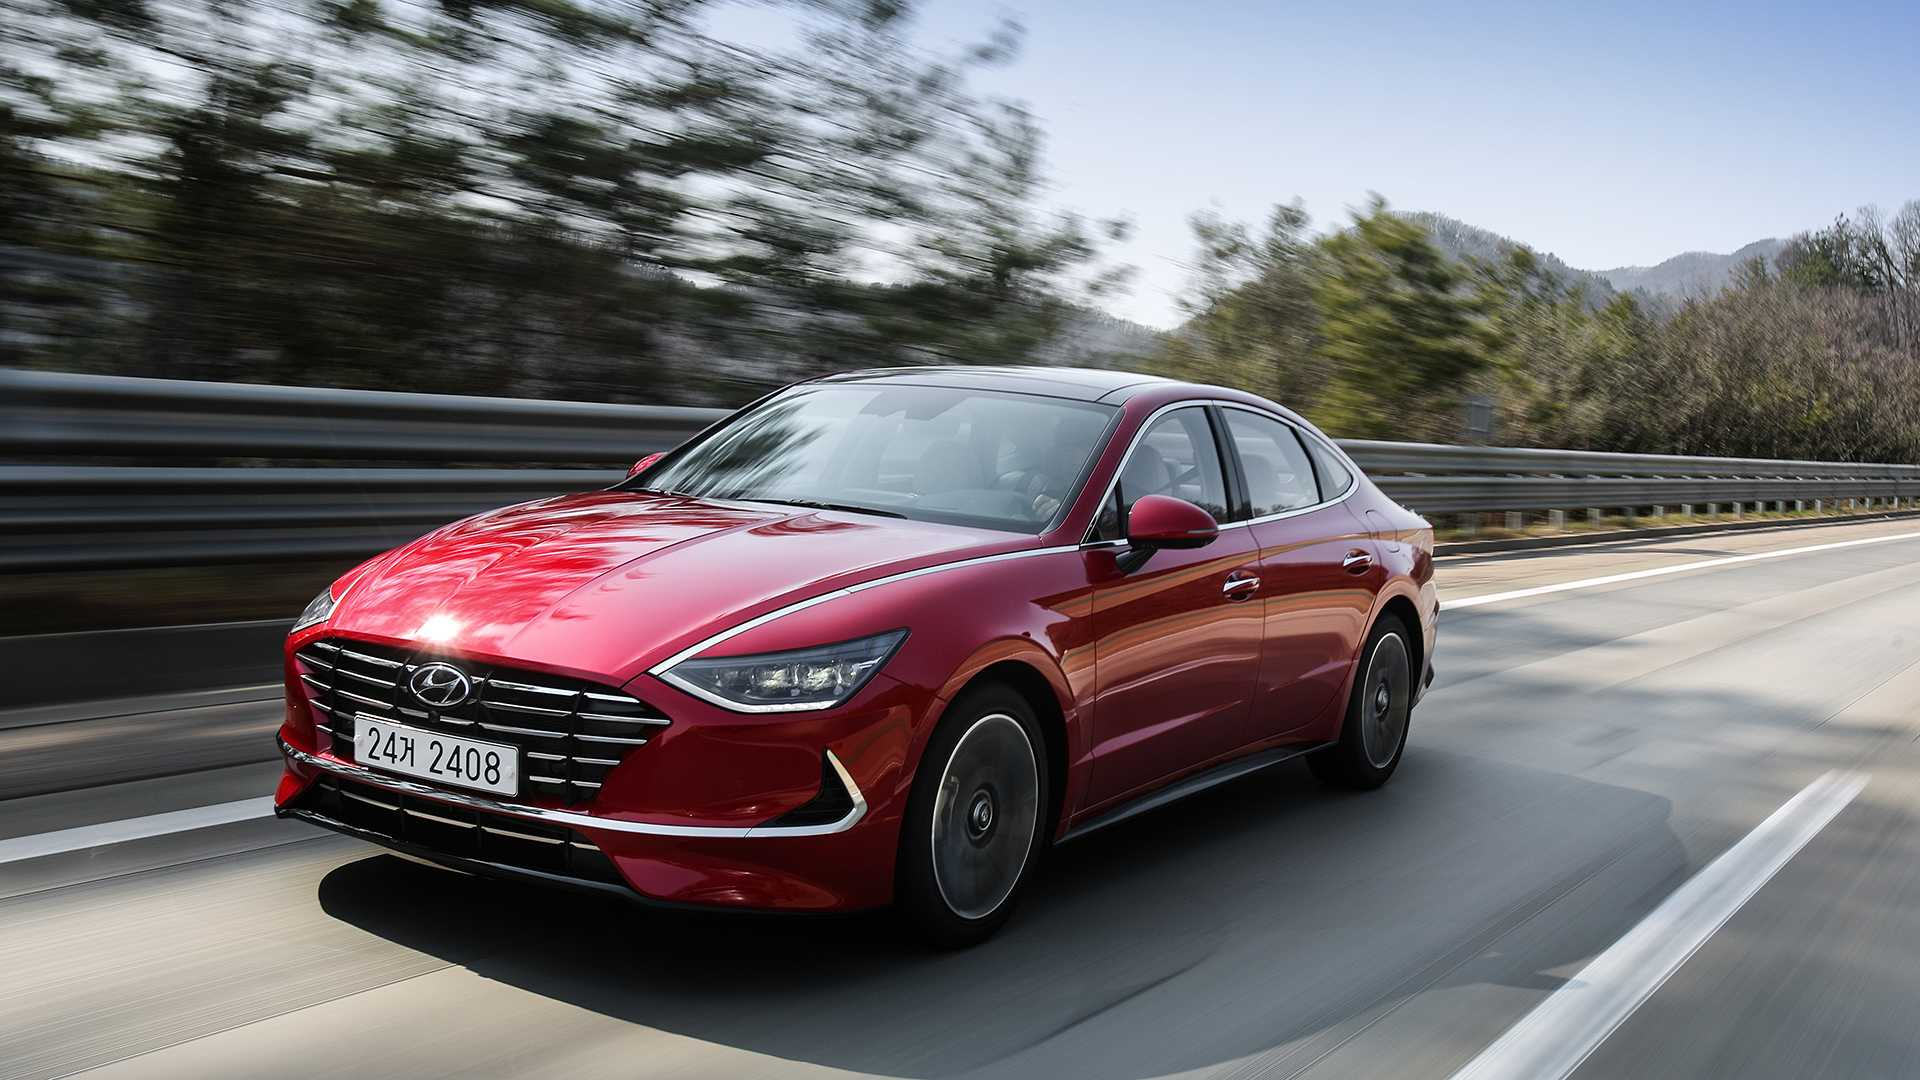 99 Great 2020 Hyundai Sonata Redesign New Concept by 2020 Hyundai Sonata Redesign